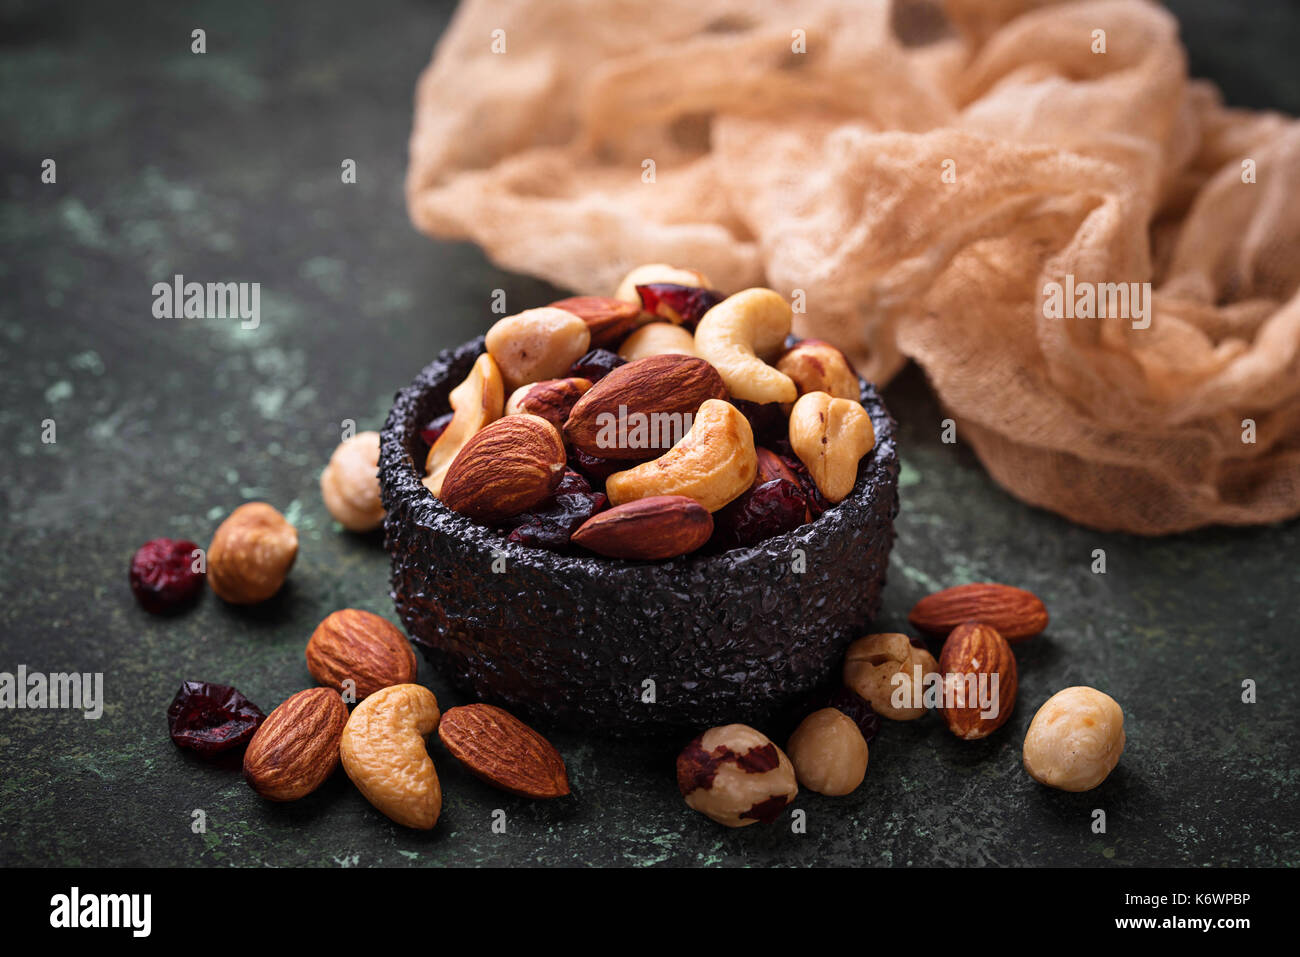 Nuts and dried fruits mix - Stock Image